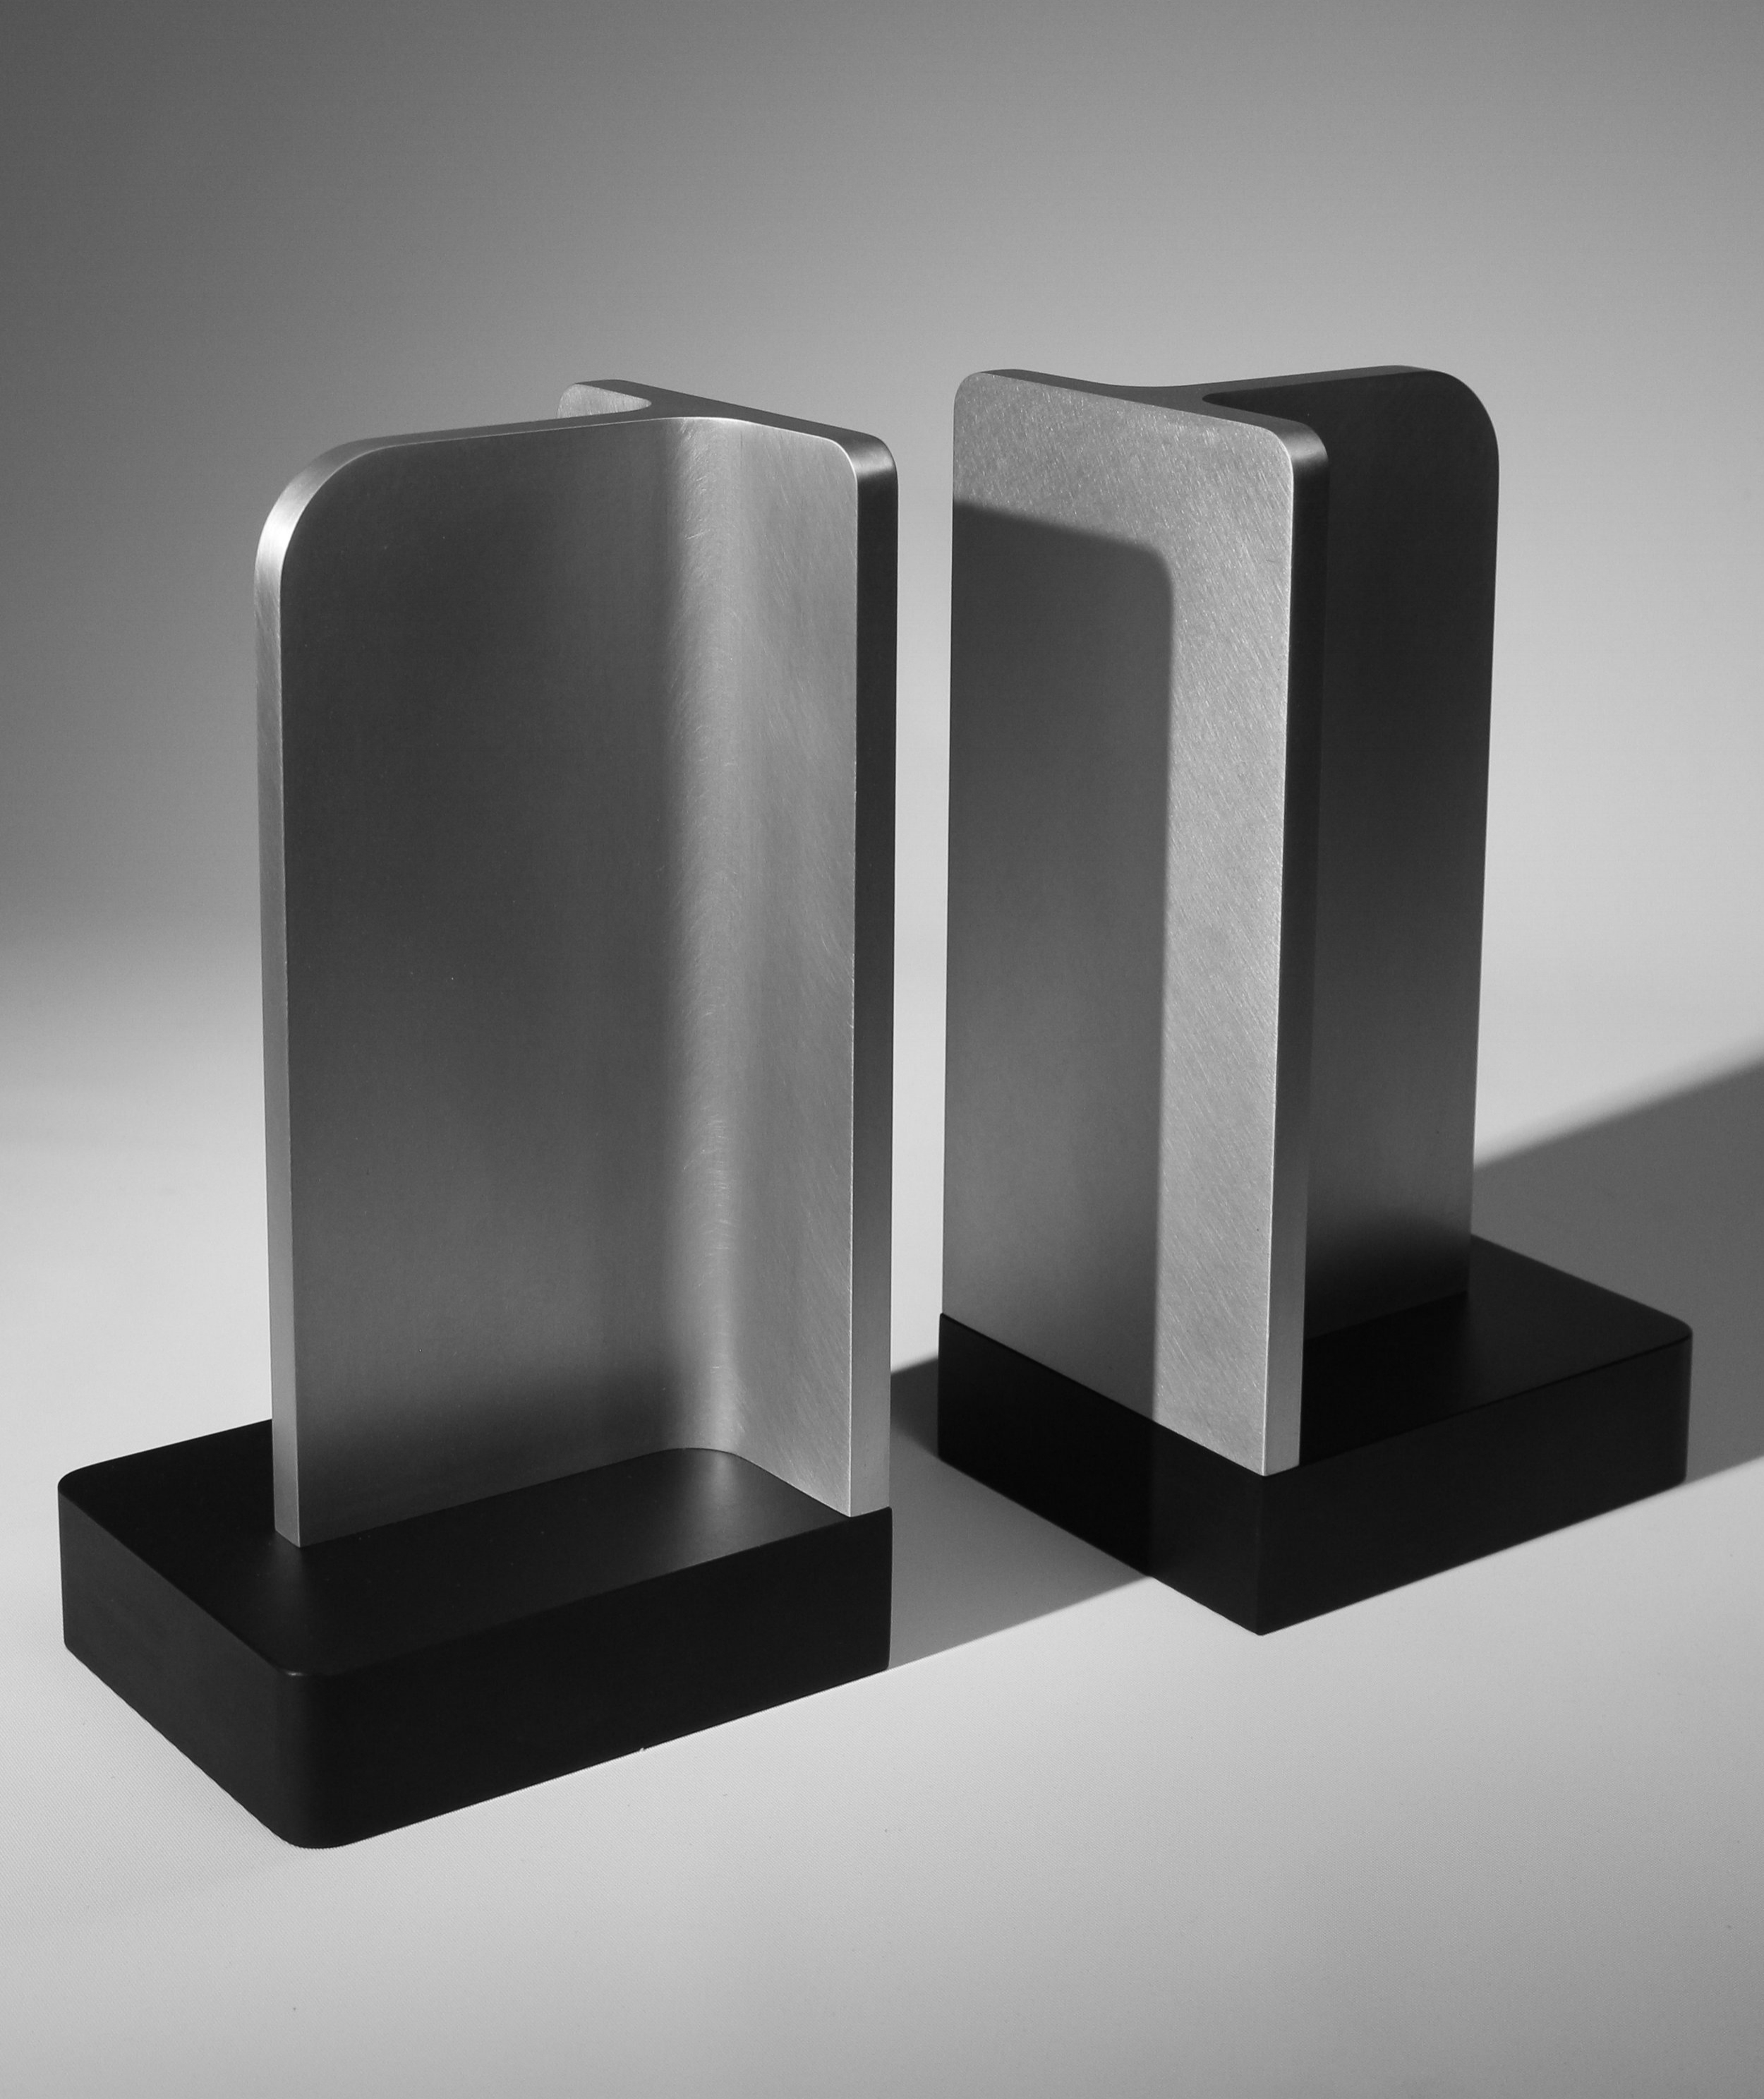 APD Argosy Product Division Structural Bookends  Modern Industrial Product Design for Contemporary Interior Design Clean Geometry Simplicity with Handmade Craftsmanship